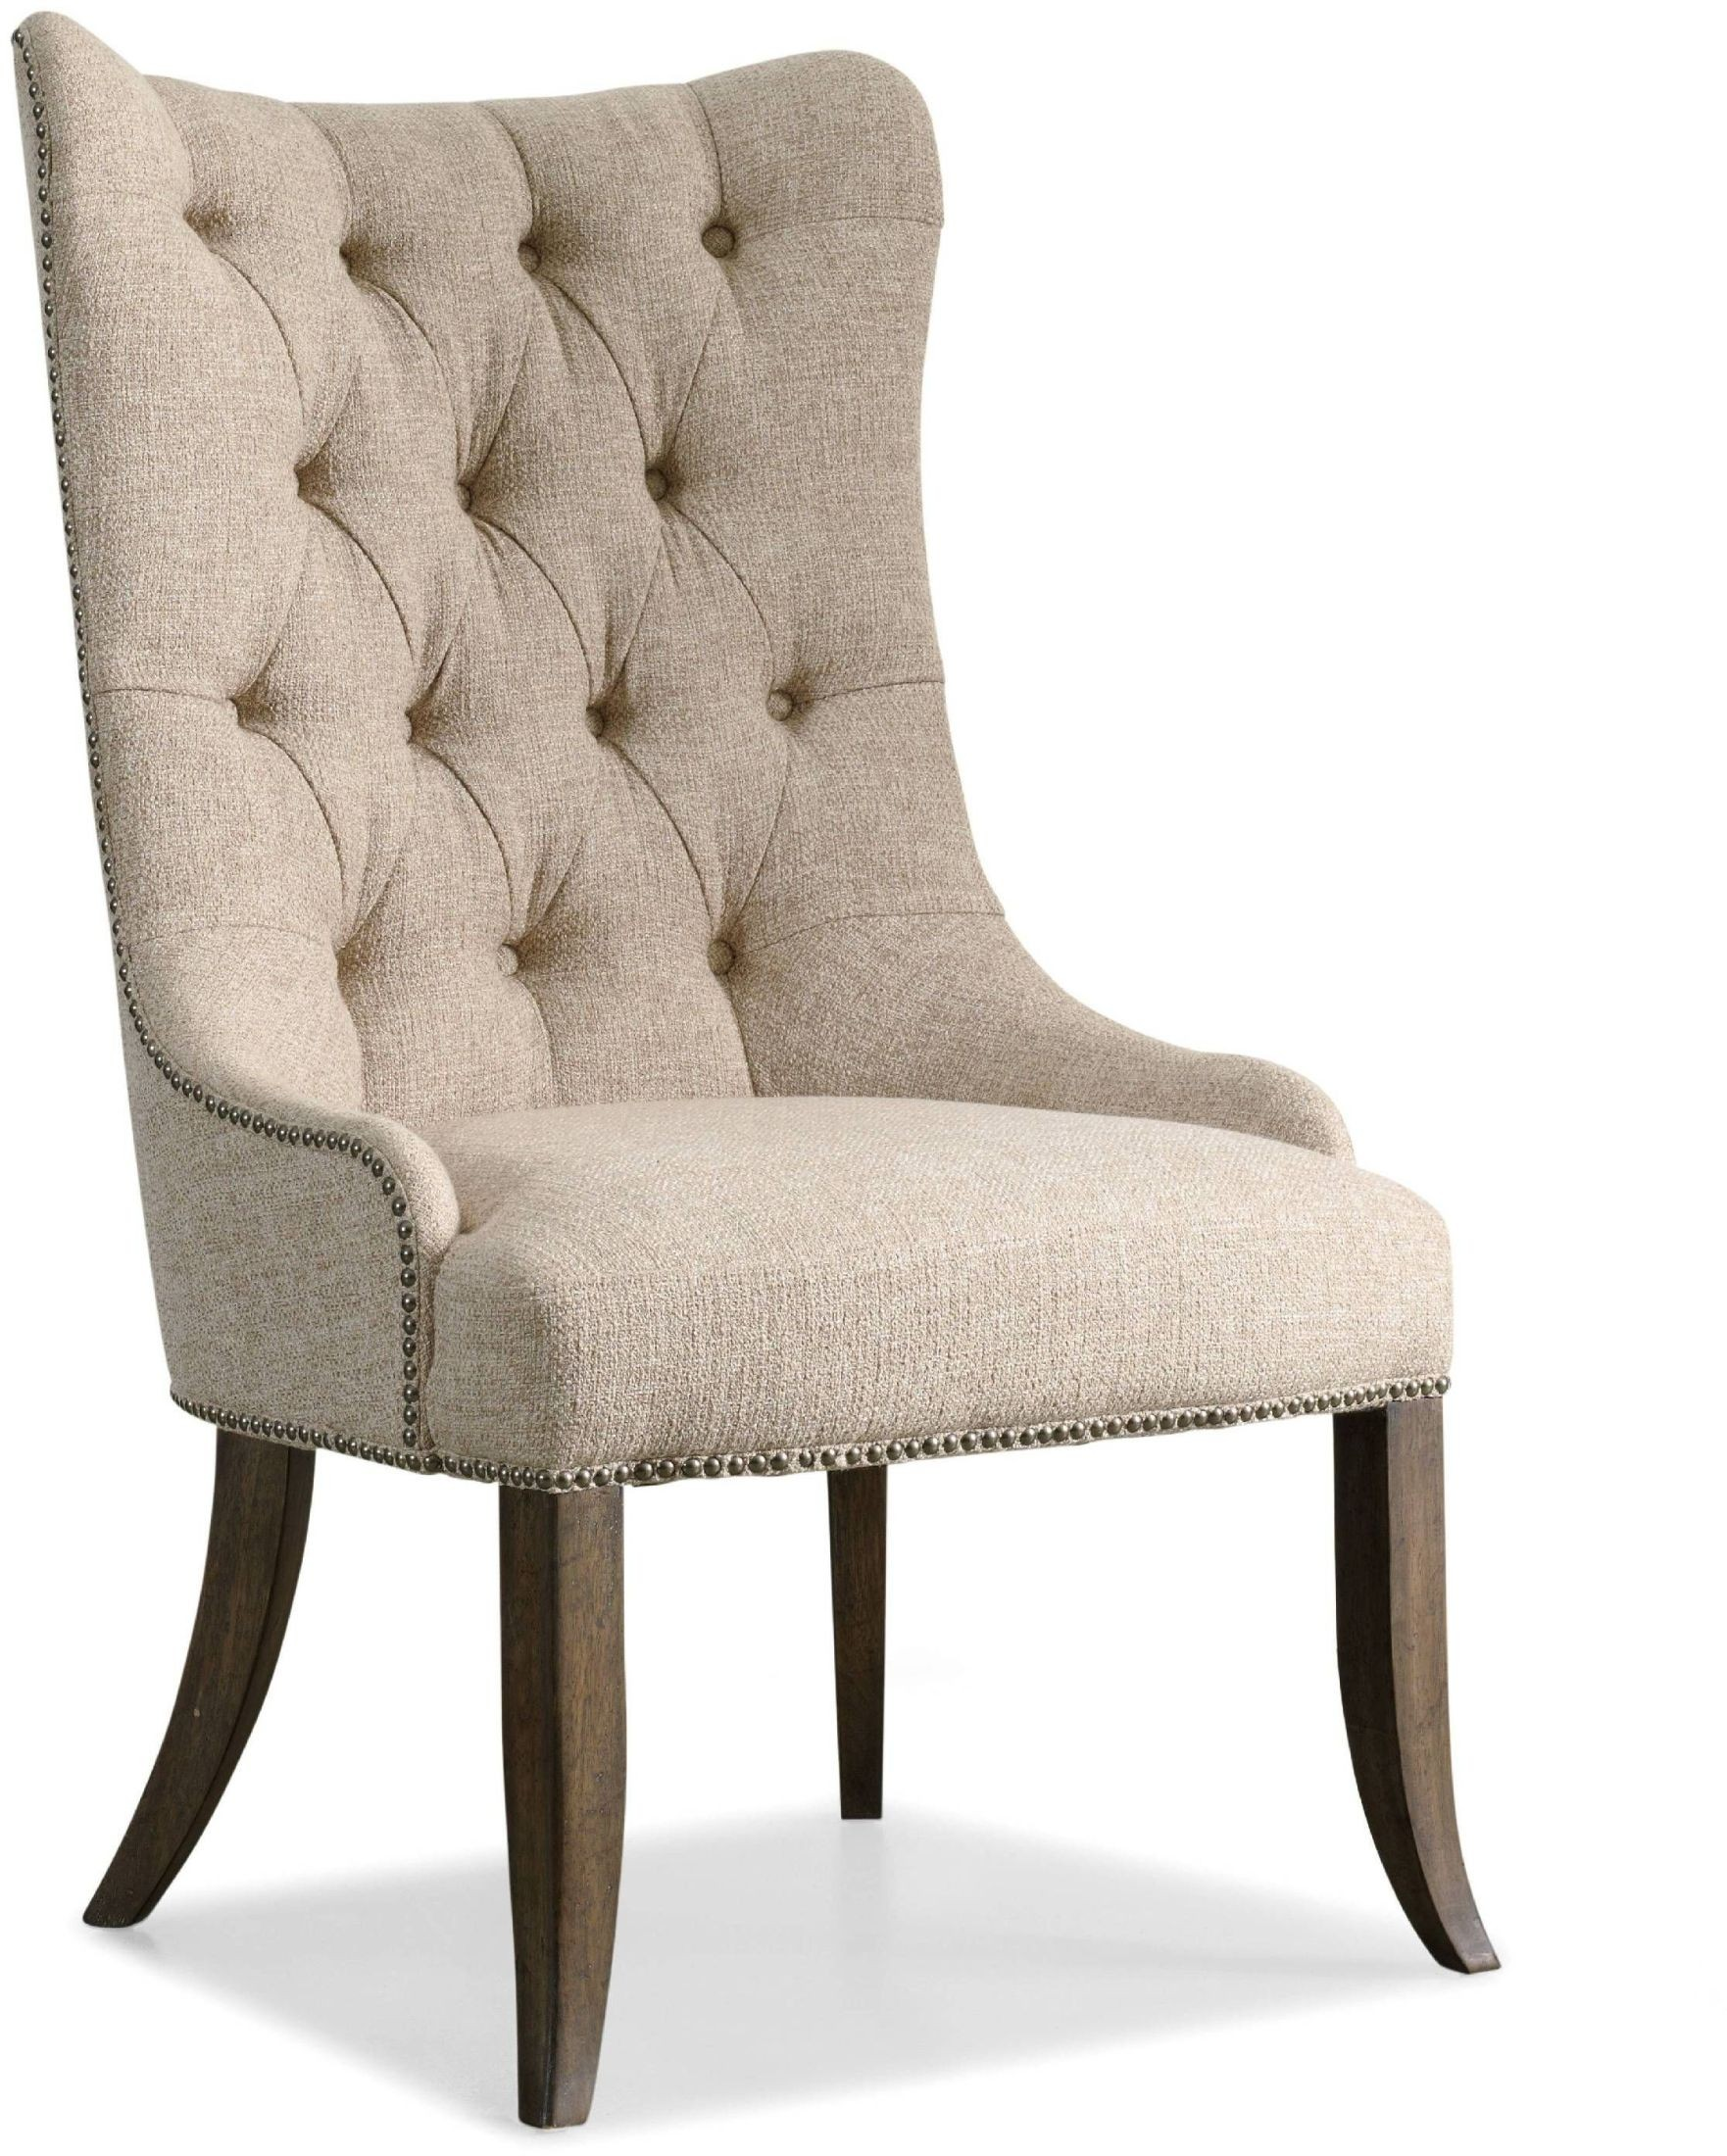 beige dining chairs high back uk rhapsody tufted chair set of 2 from hooker